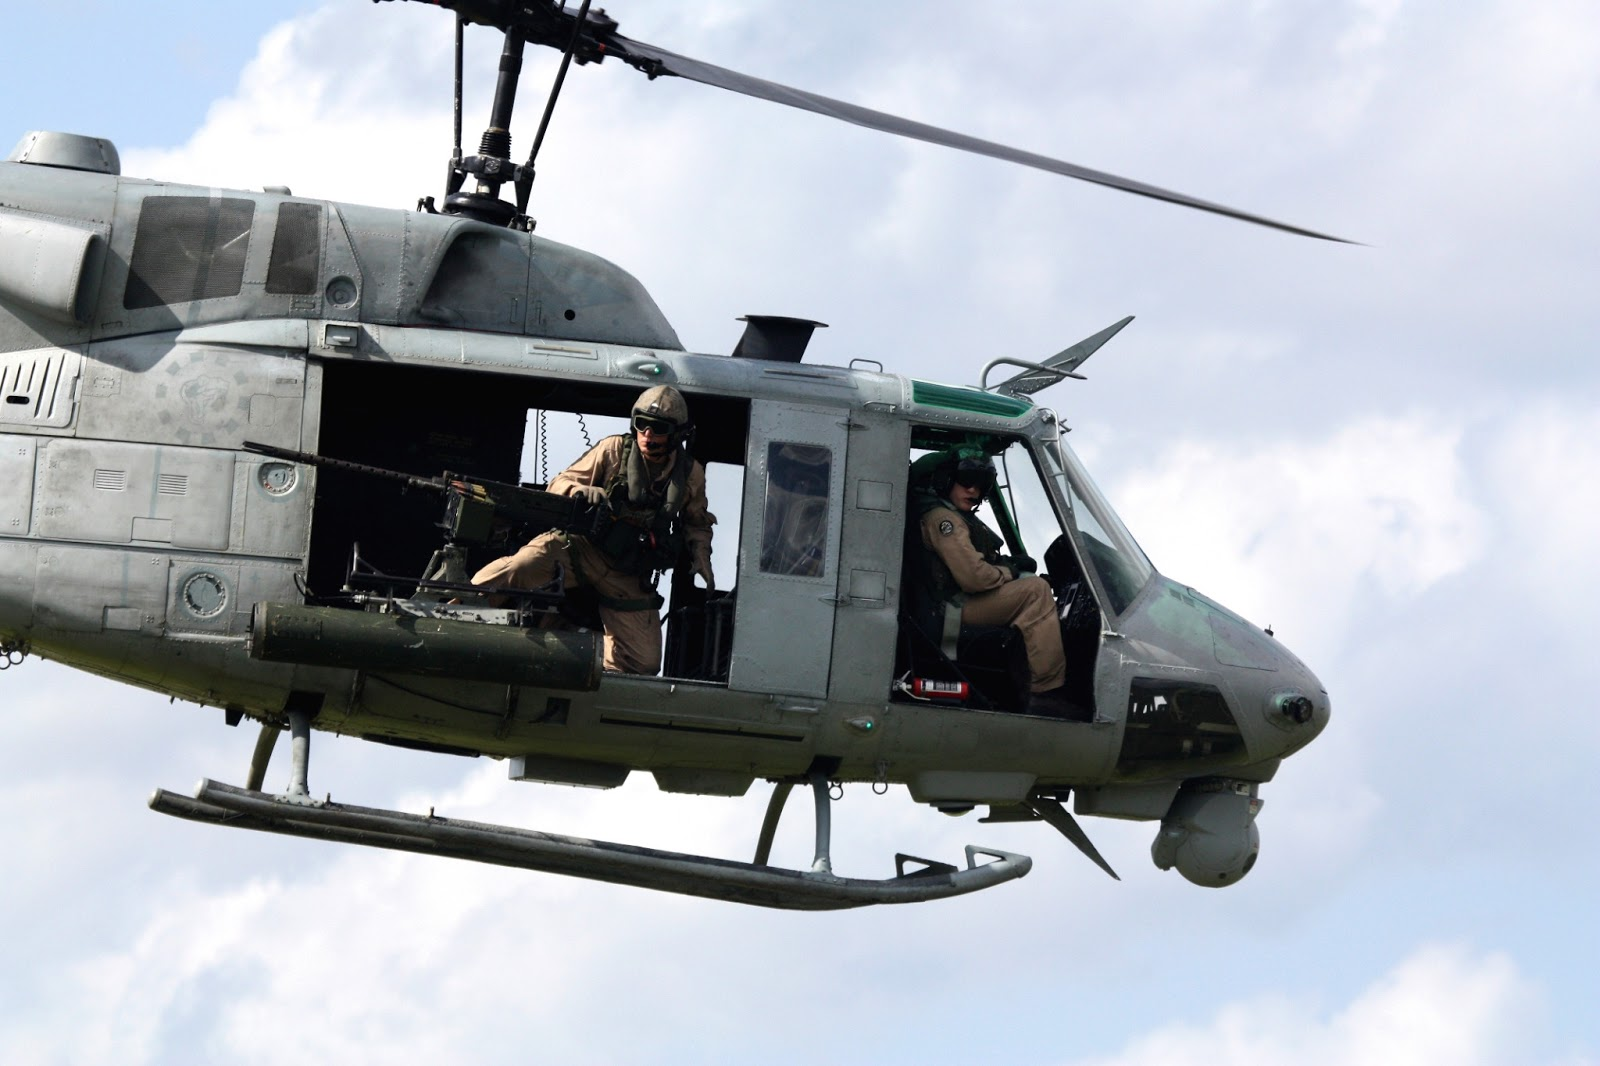 Elicottero Uh 1 : Public domain aircraft images bell uh iroquois huey